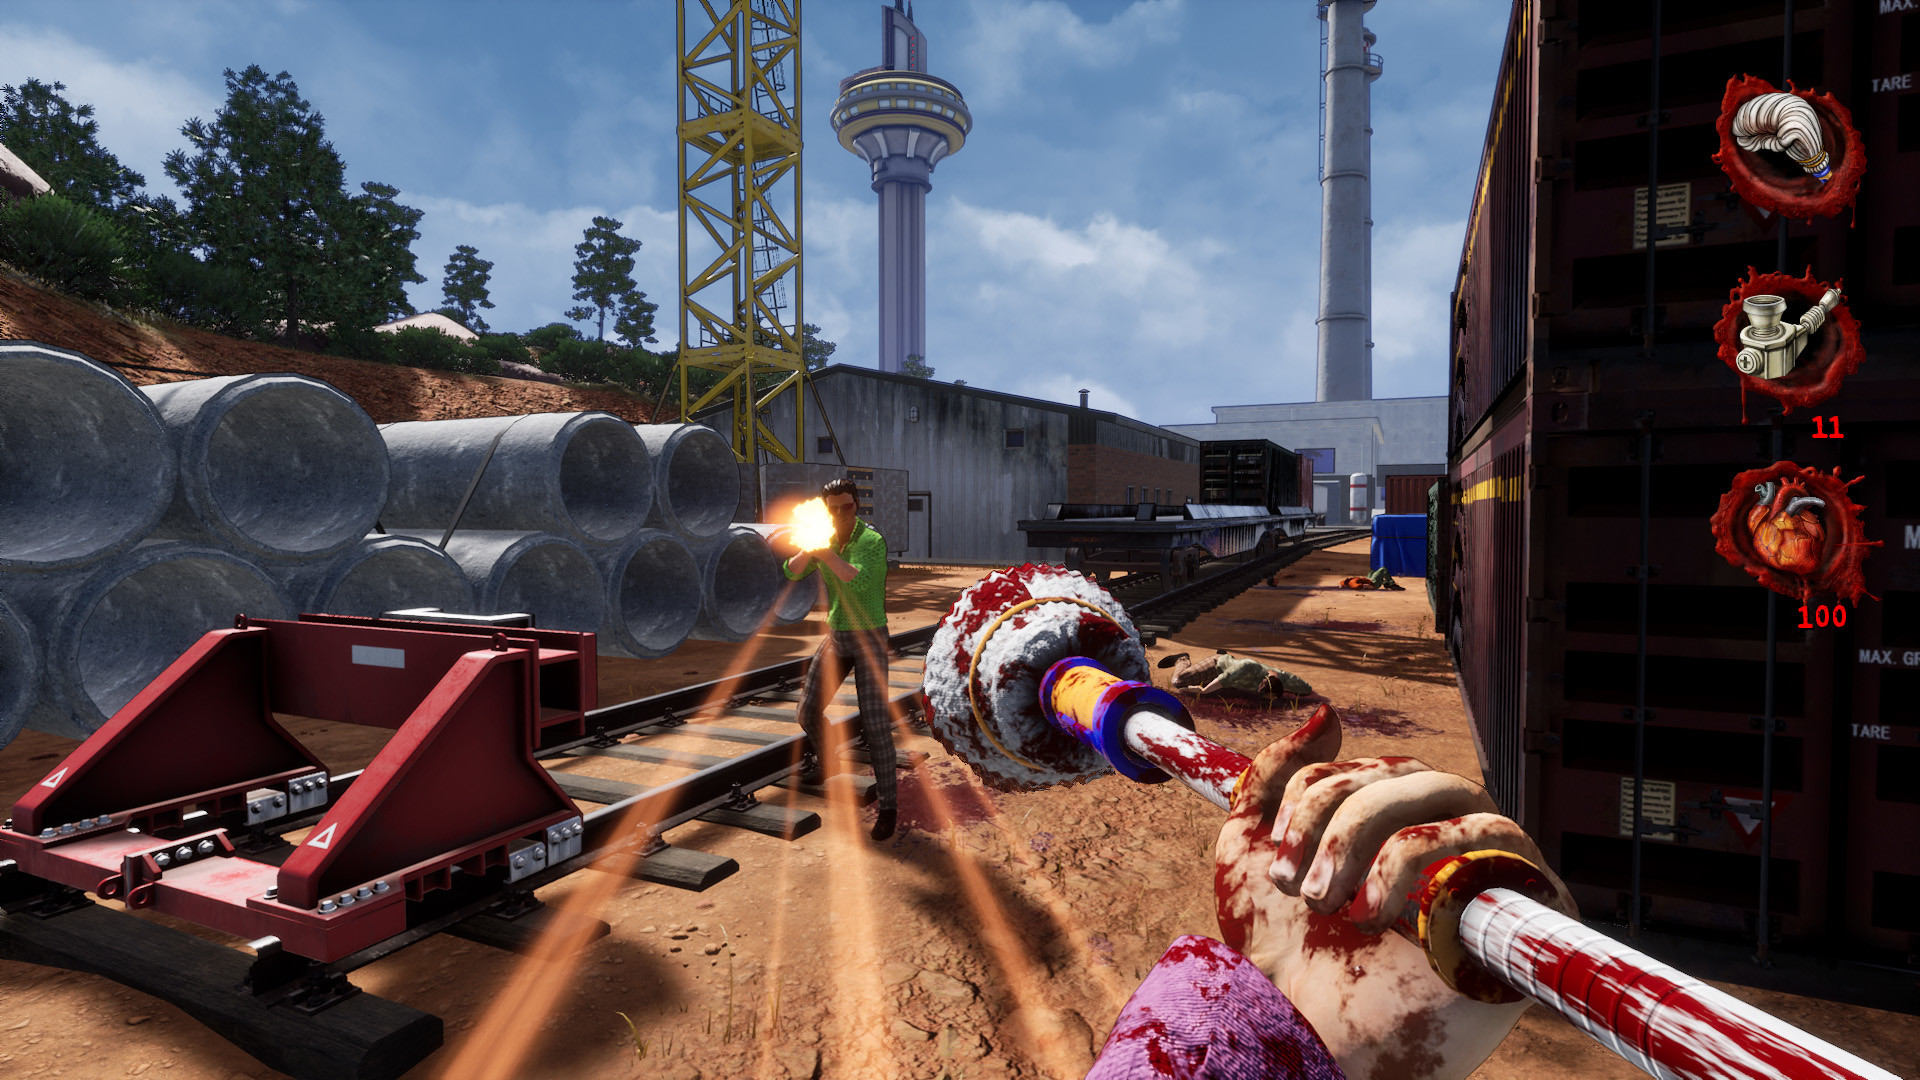 Download Postal 4 No Regerts The Curve Early Access in PC [ Torrent ]